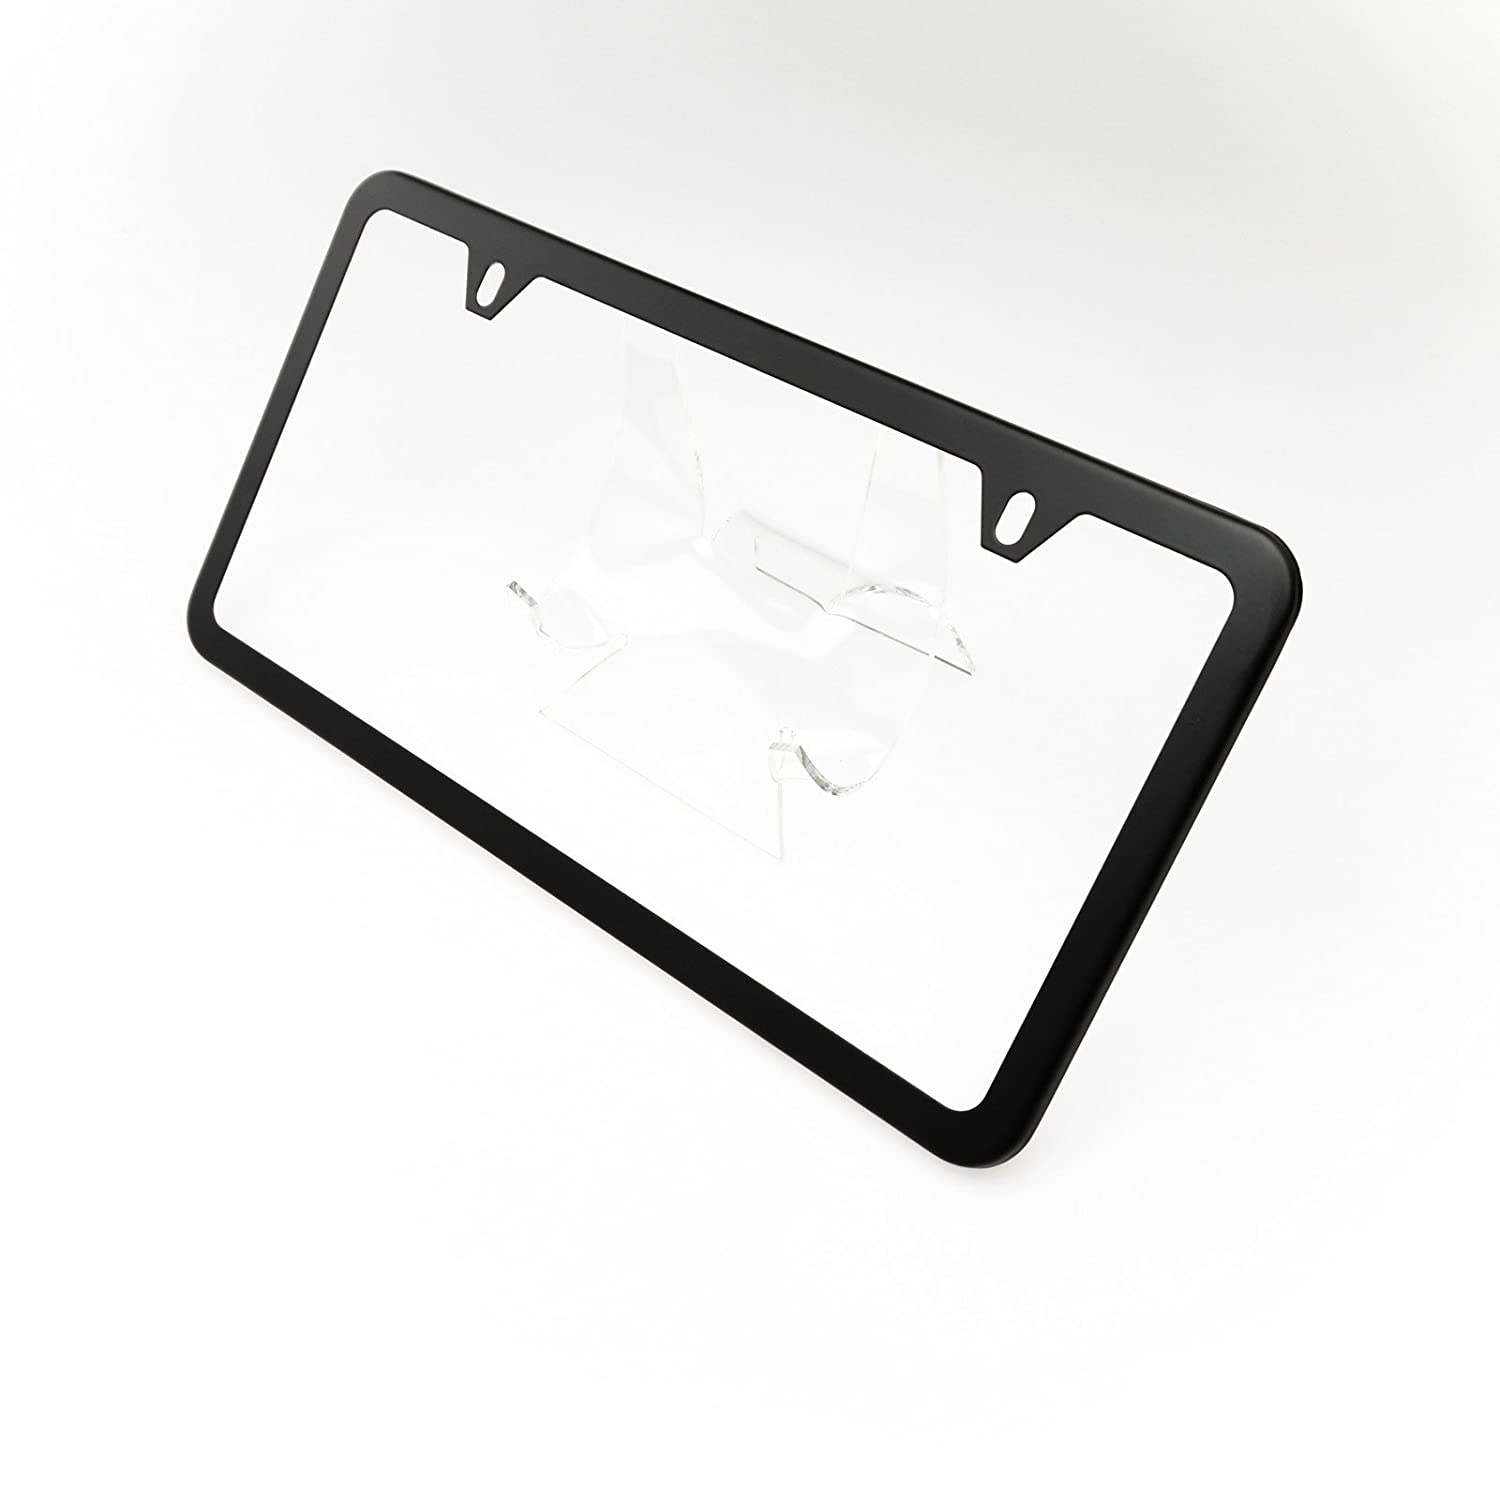 Amazon.com: Circle Cool Matte Black Powder Coated Stainless Steel License Plate Slim Two Hole Frame Holder Bracket: Automotive